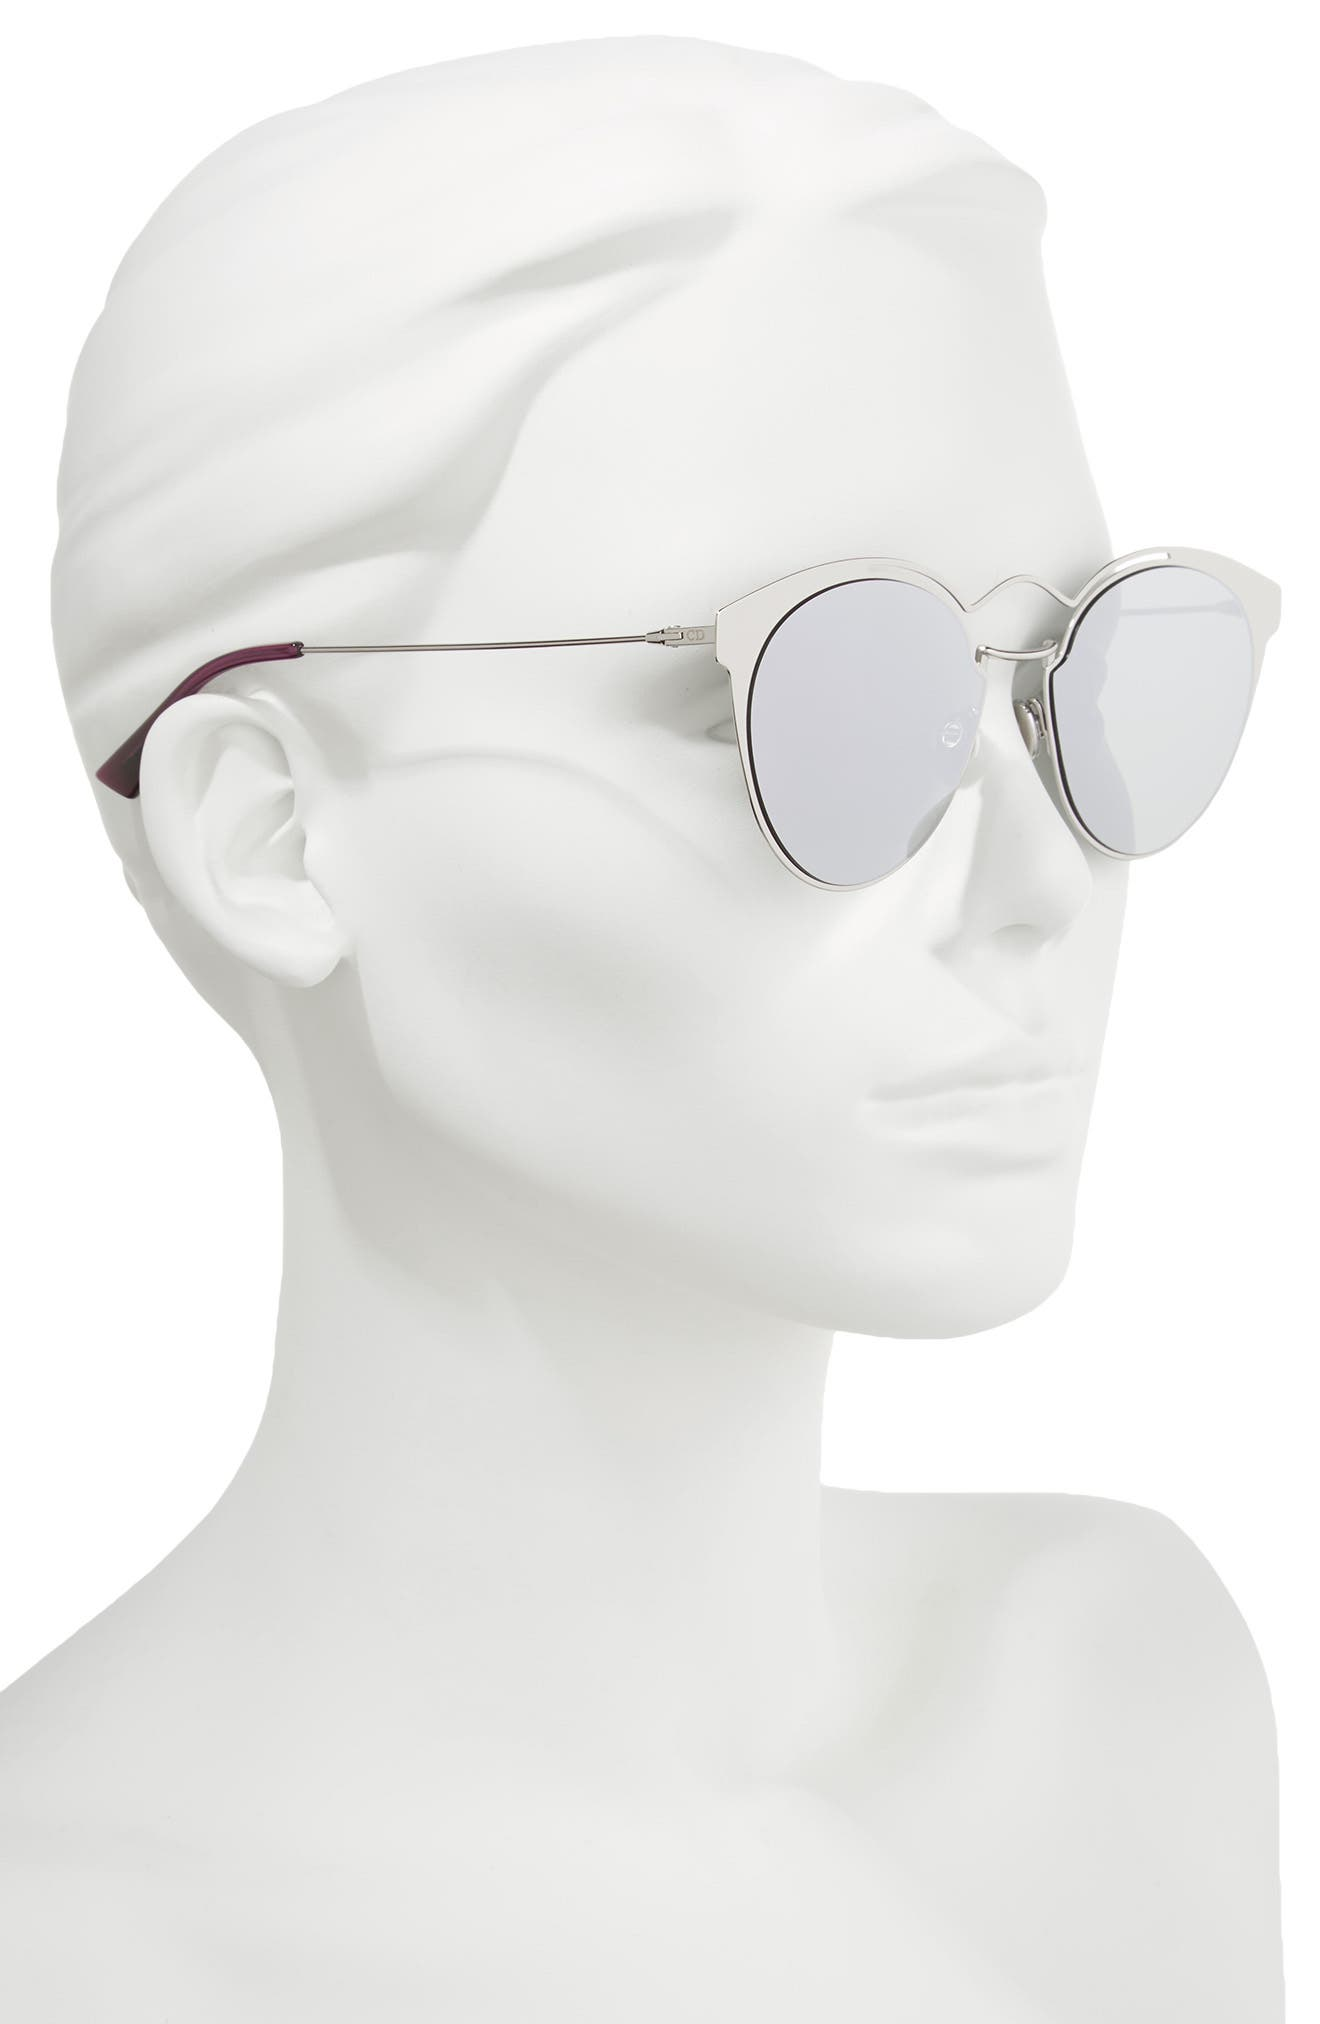 Nebuls 54mm Sunglasses,                             Alternate thumbnail 2, color,                             041